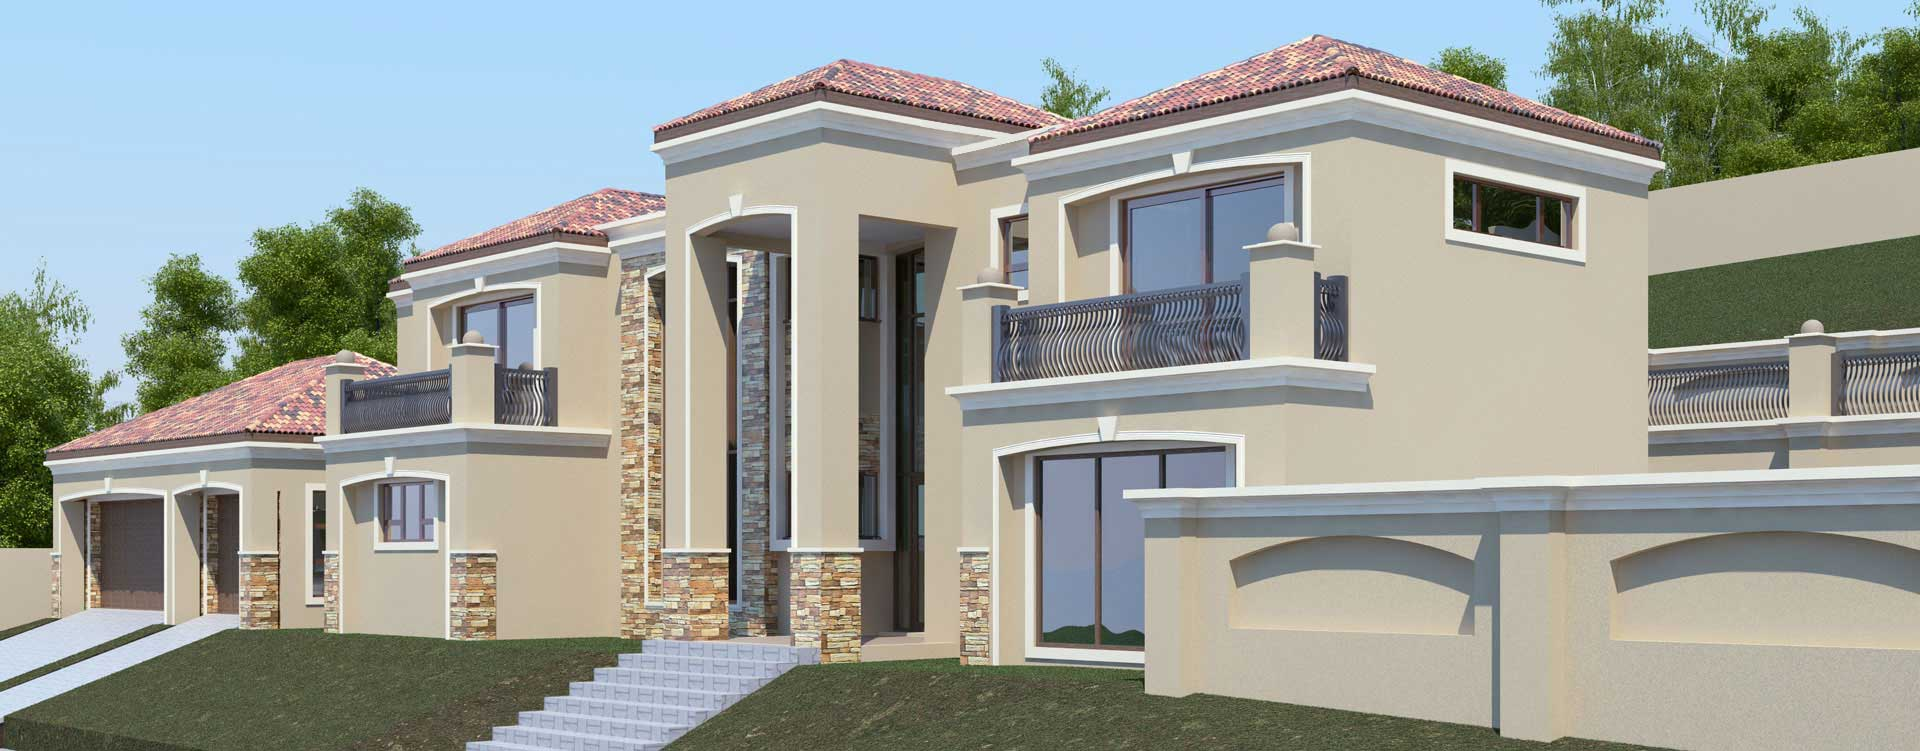 House plans and designs in uganda